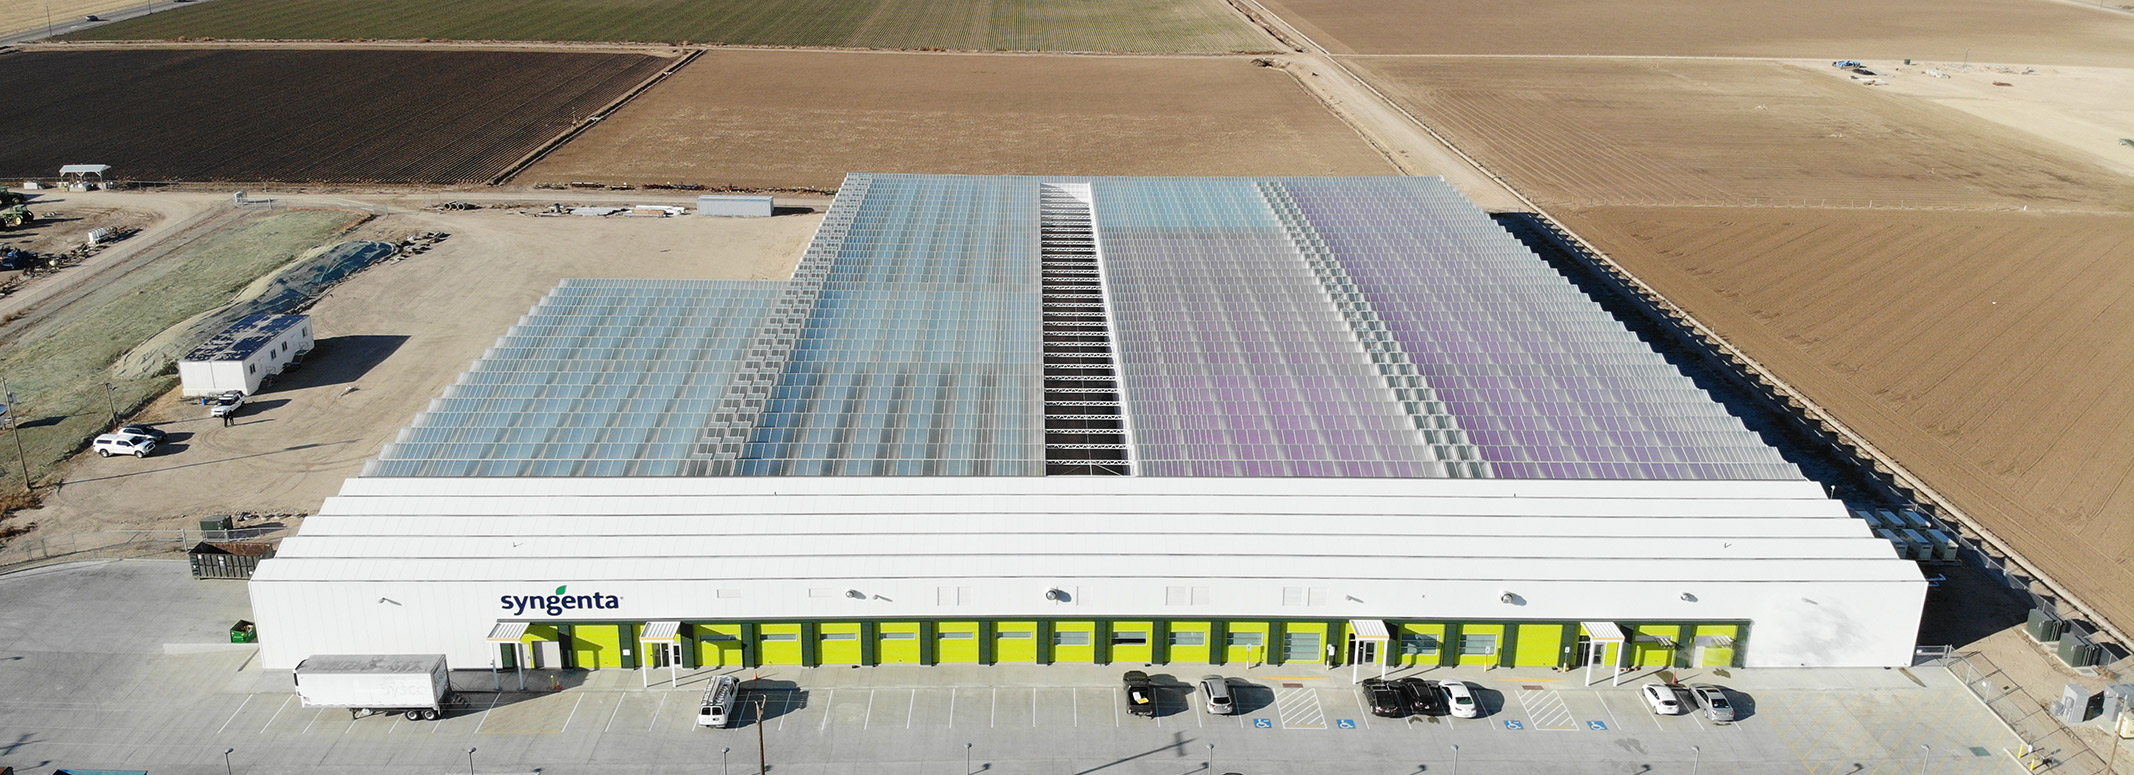 35 North Provides Project Management for Syngenta's Trait Conversion Accelerator in Nampa, Idaho